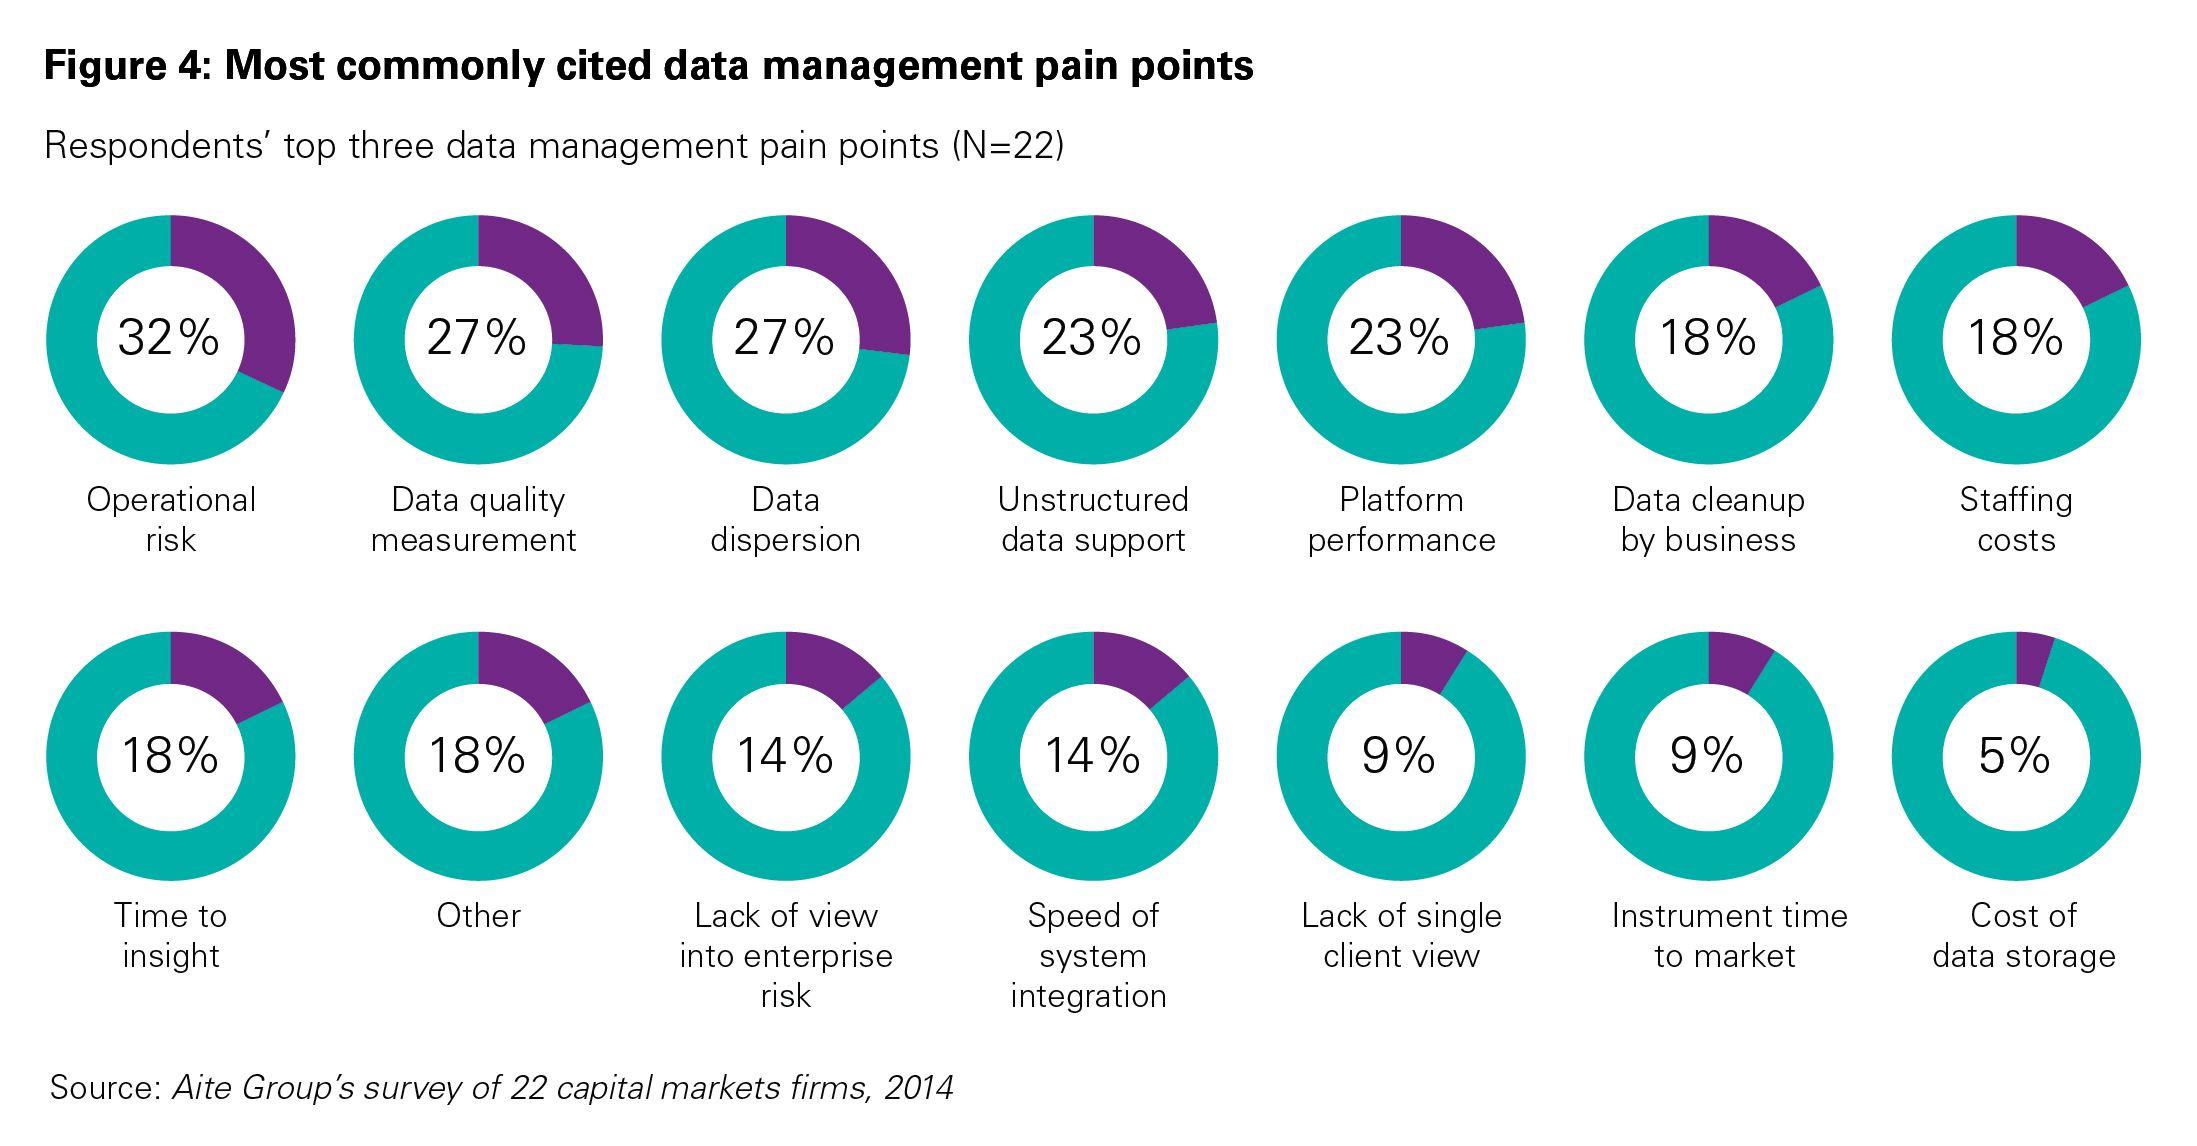 Common data management pain points